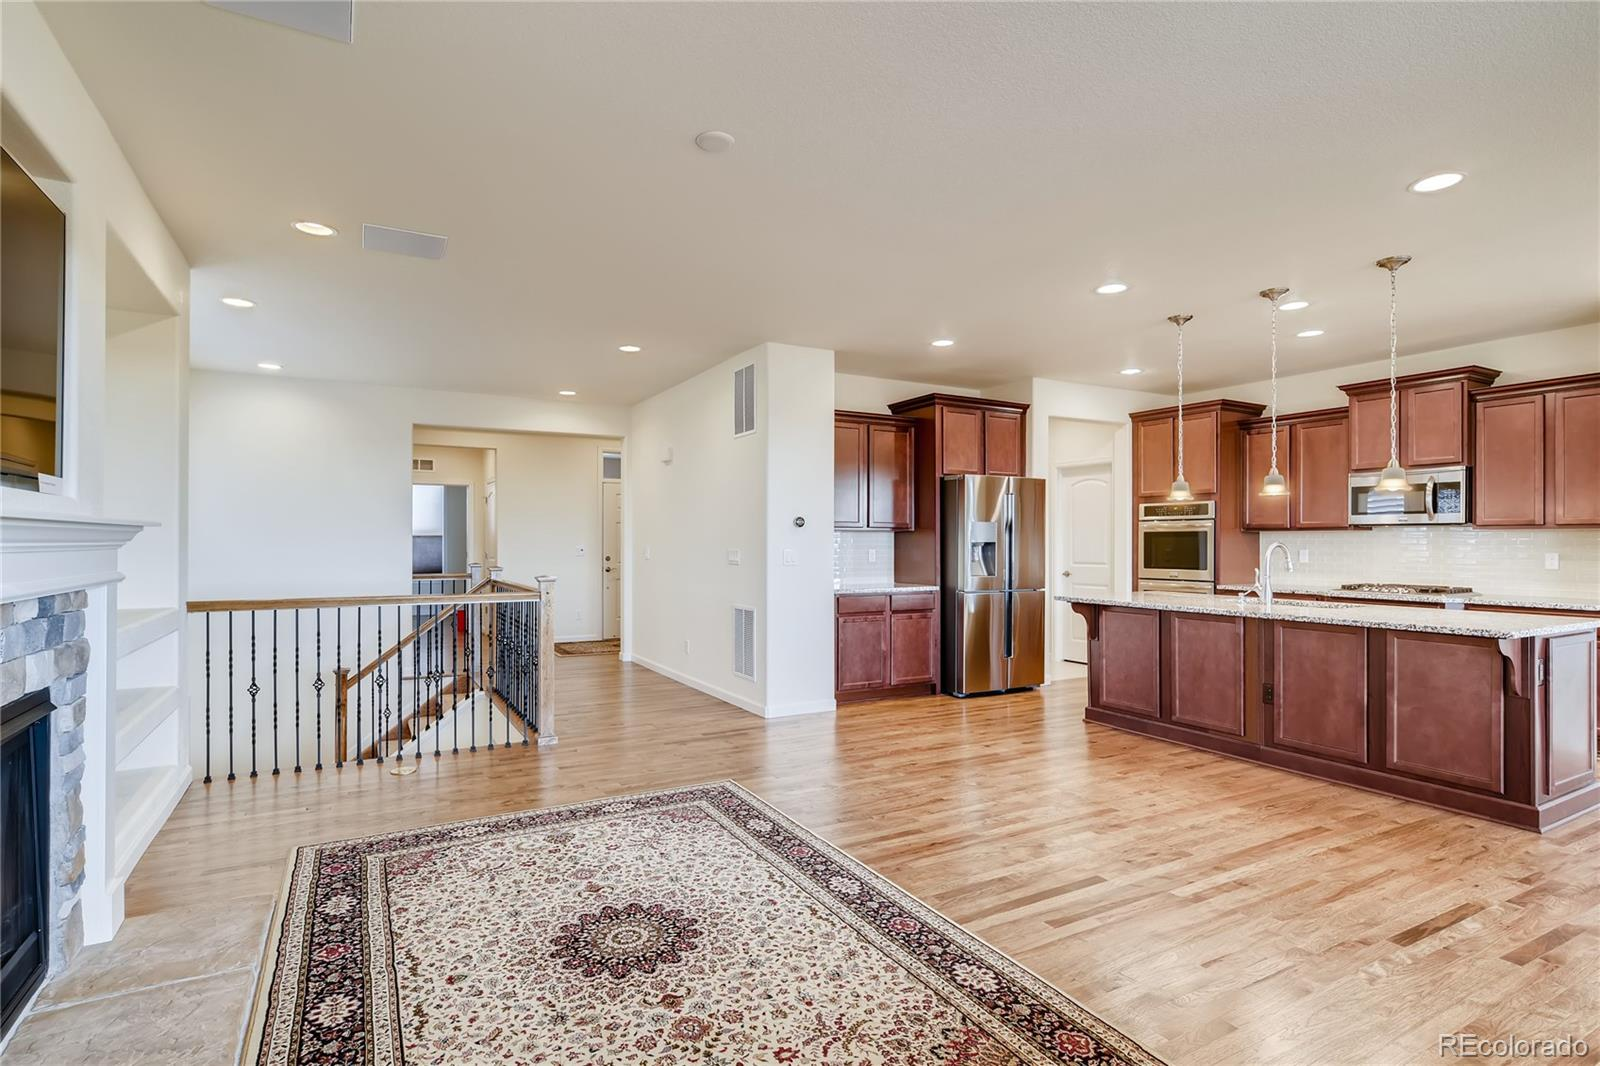 MLS# 5348867 - 5 - 1514 Promontory Bluff View, Colorado Springs, CO 80921